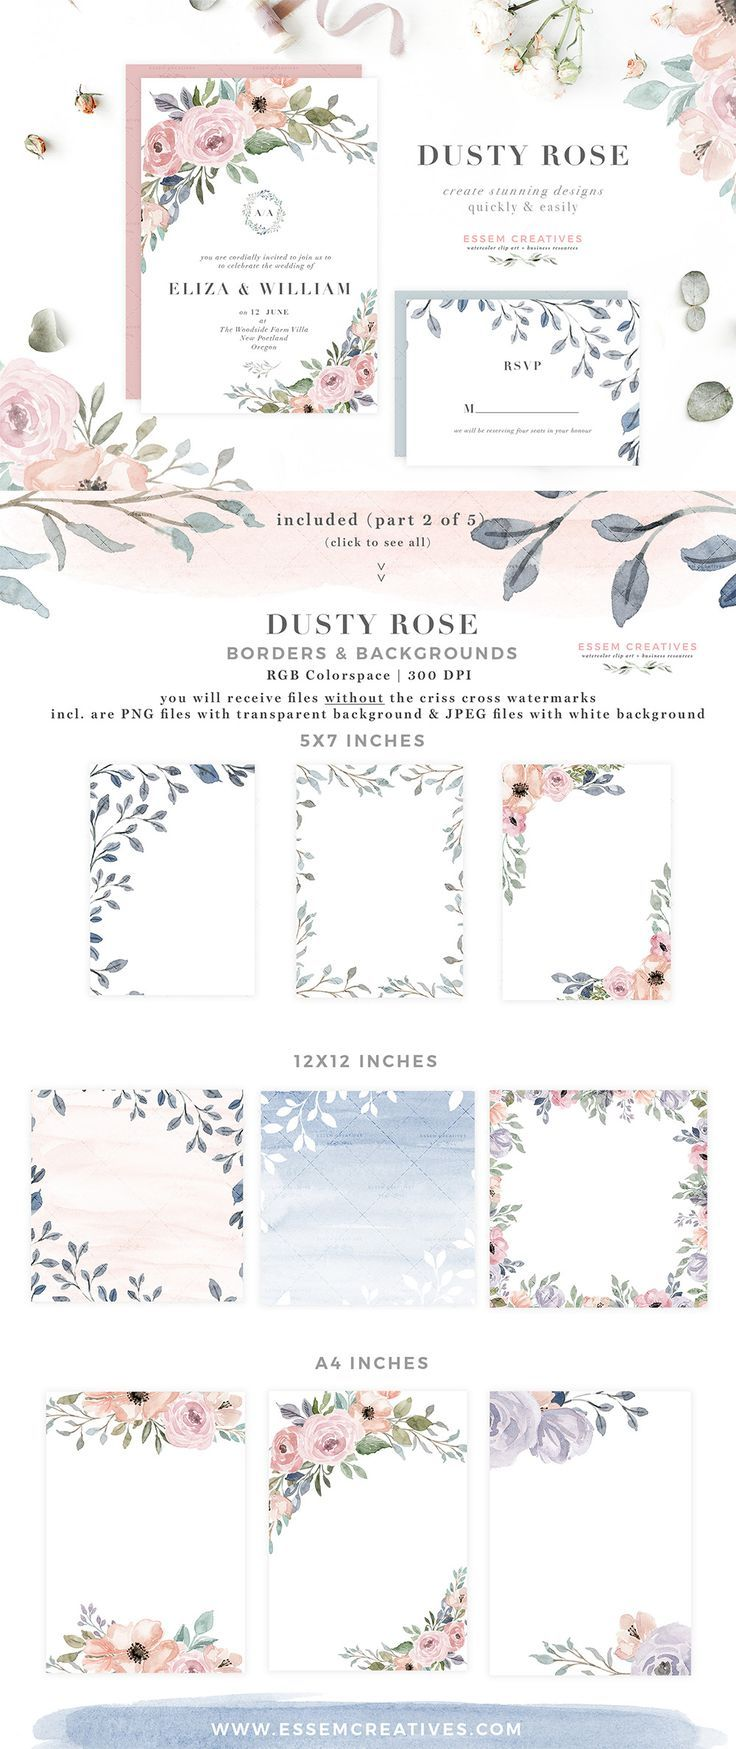 Dusty Rose Watercolor Floral Card Borders Backgrounds Png Jpeg